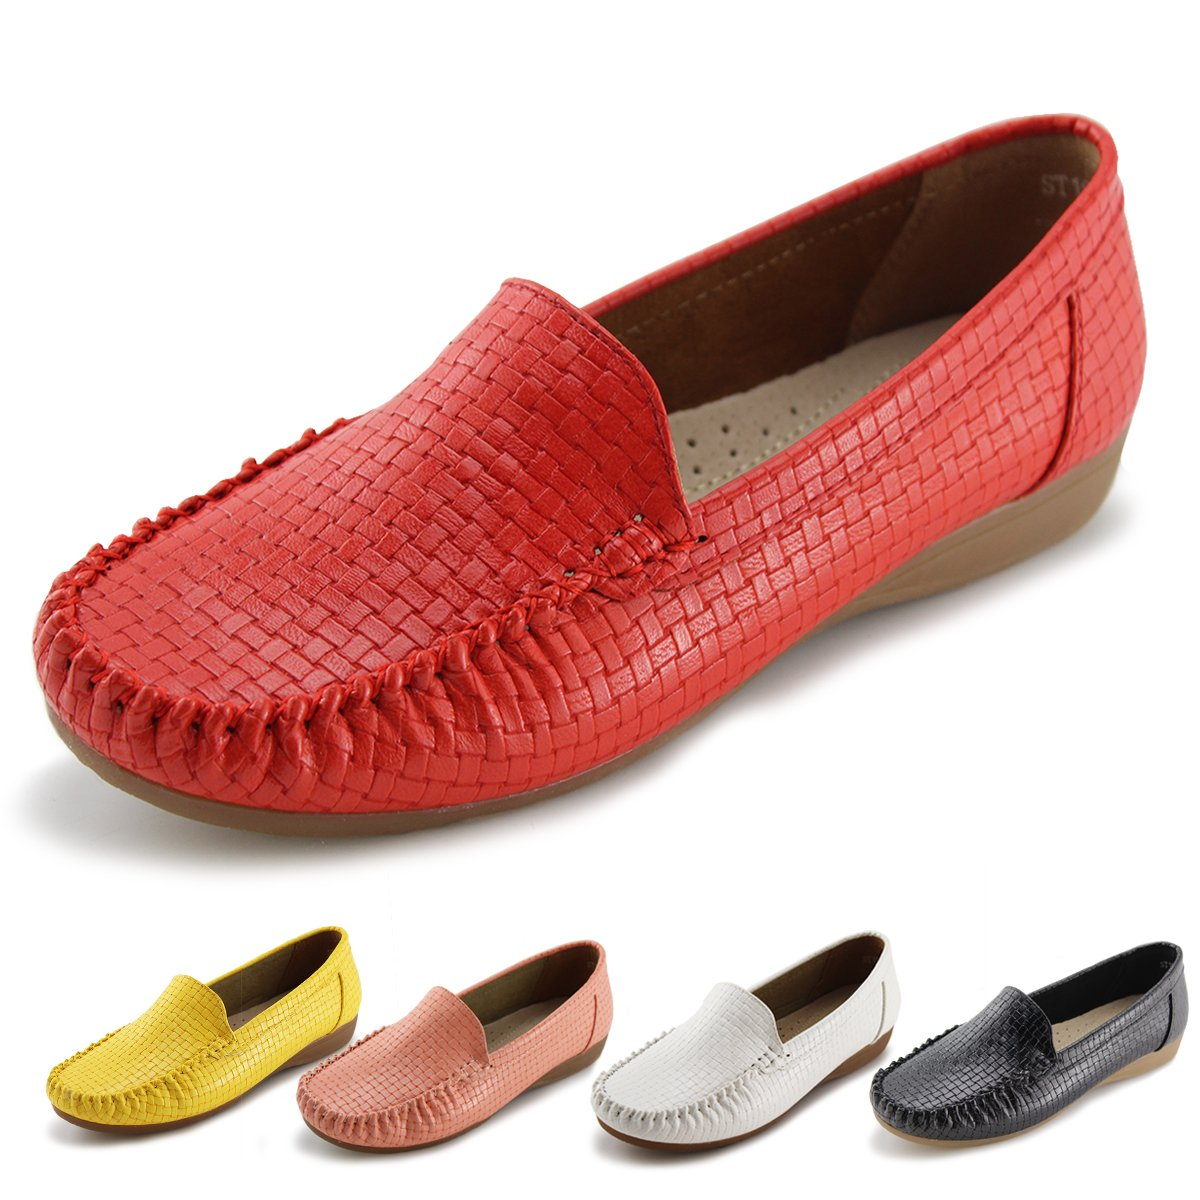 Jabasic Women's Slip-on Loafers Flat Casual Driving Shoes ST2191